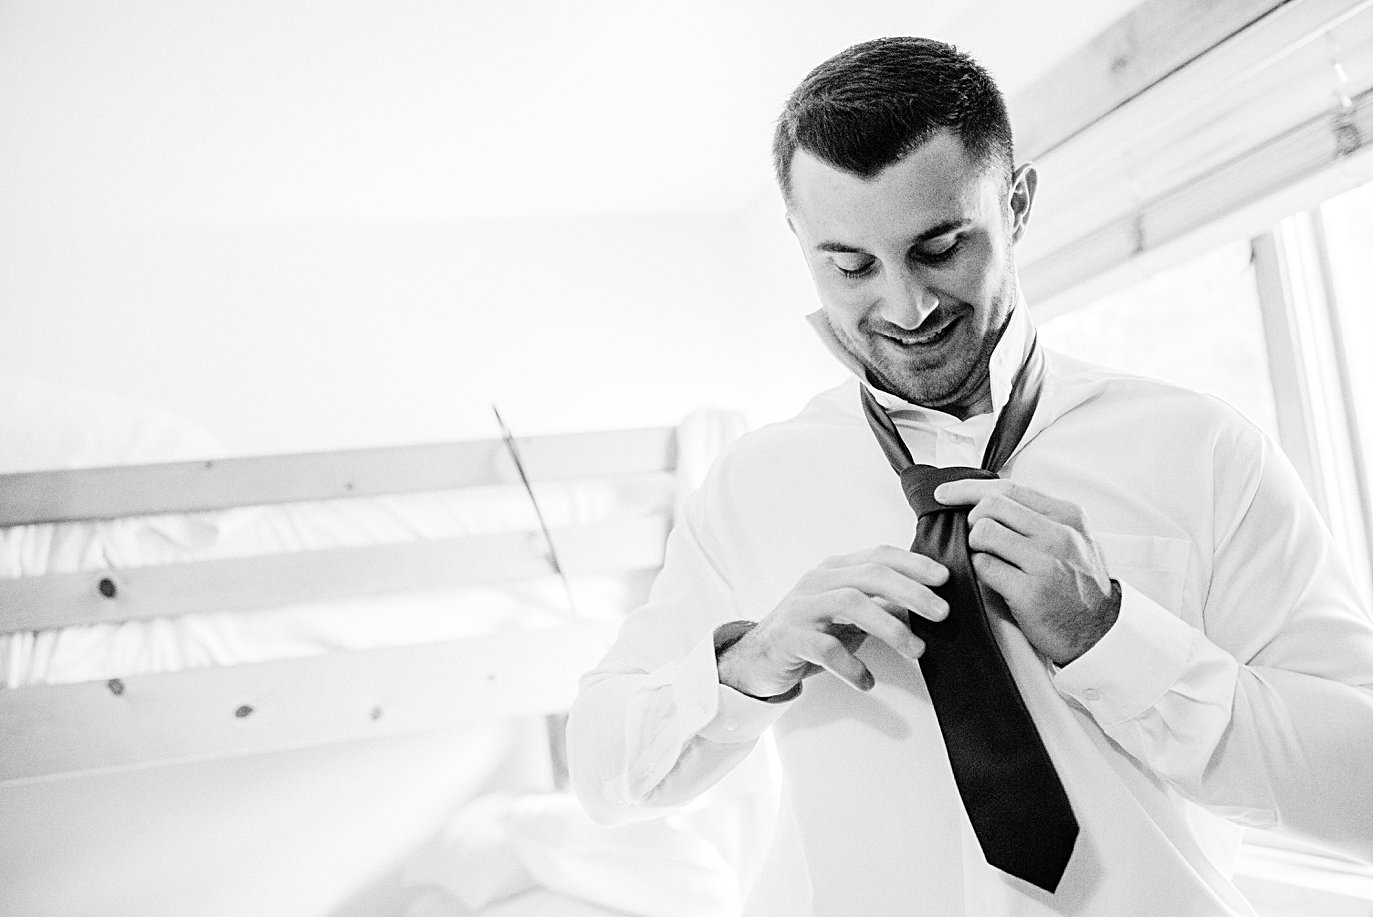 groom ties tie on wedding day at Larkspur Vail Wedding by Vail Wedding photographer Jennie Crate